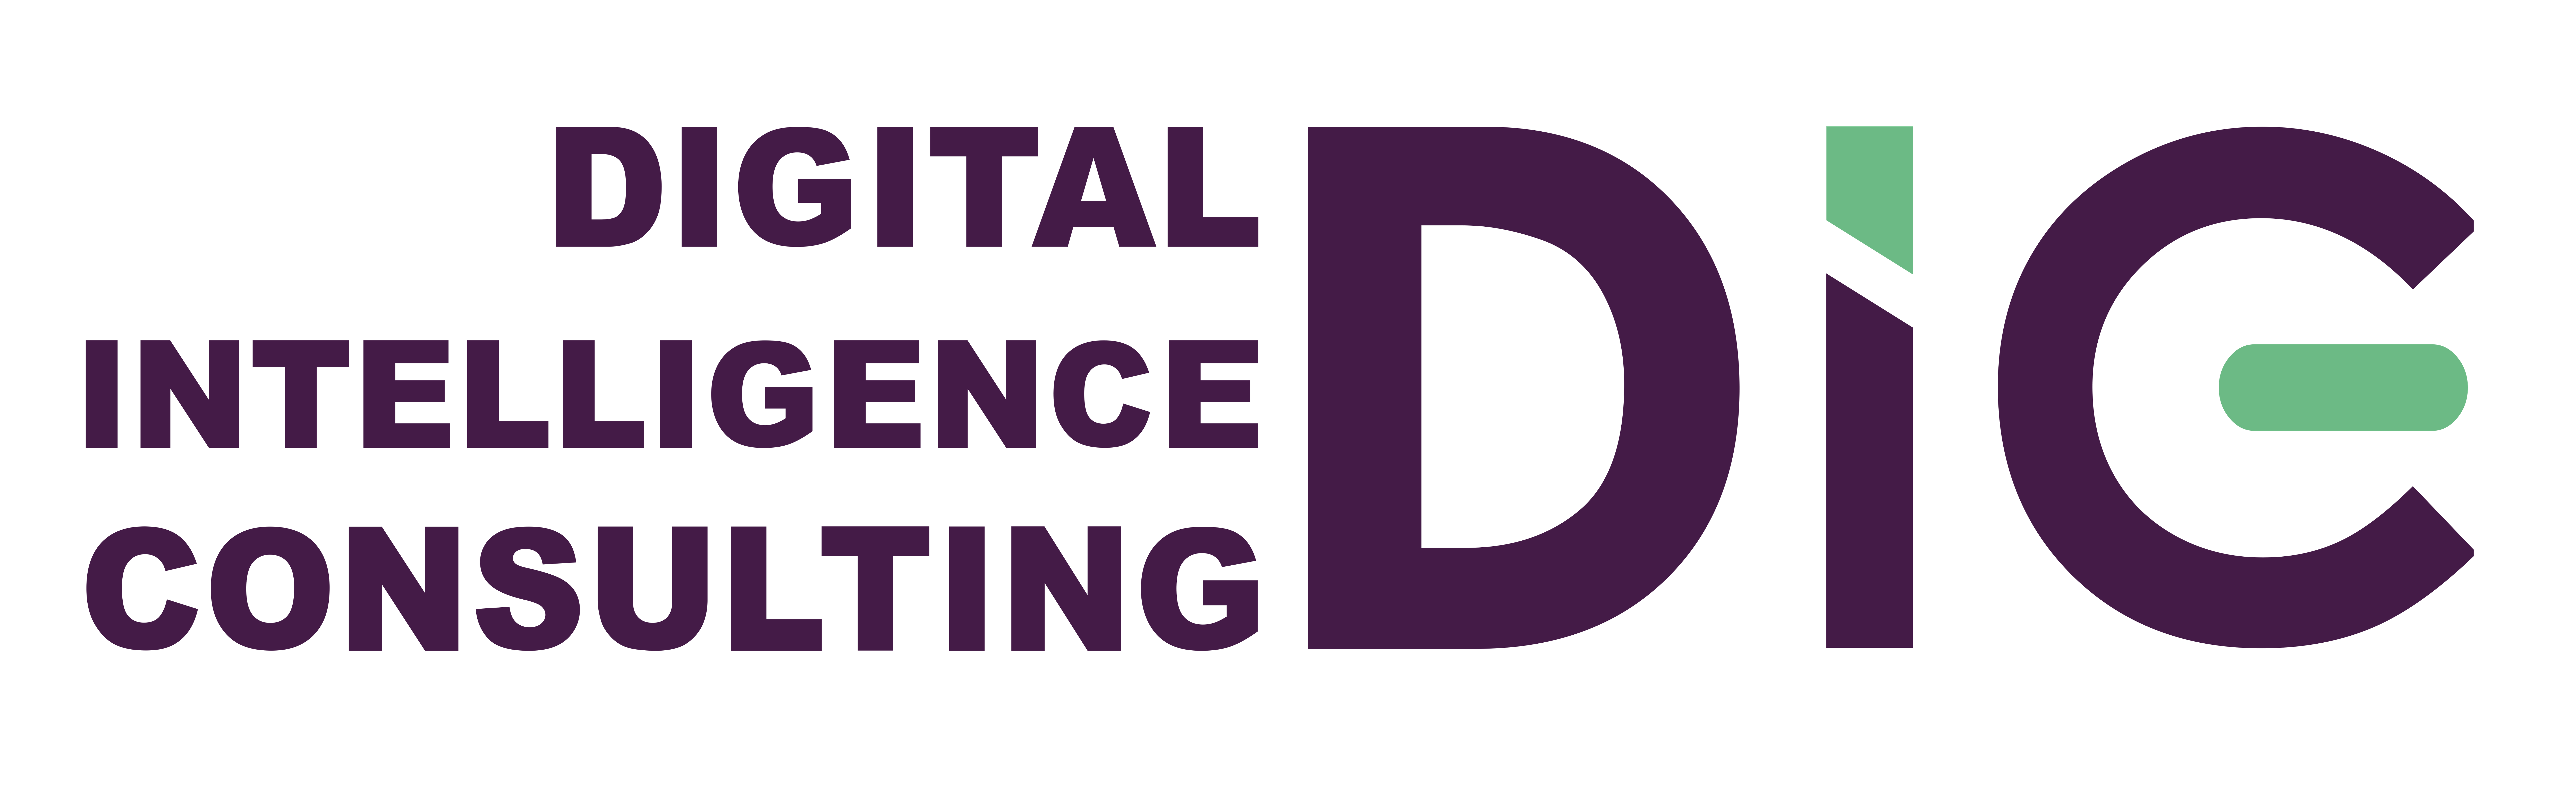 DIGITAL INTELLIGENCE CONSULTING